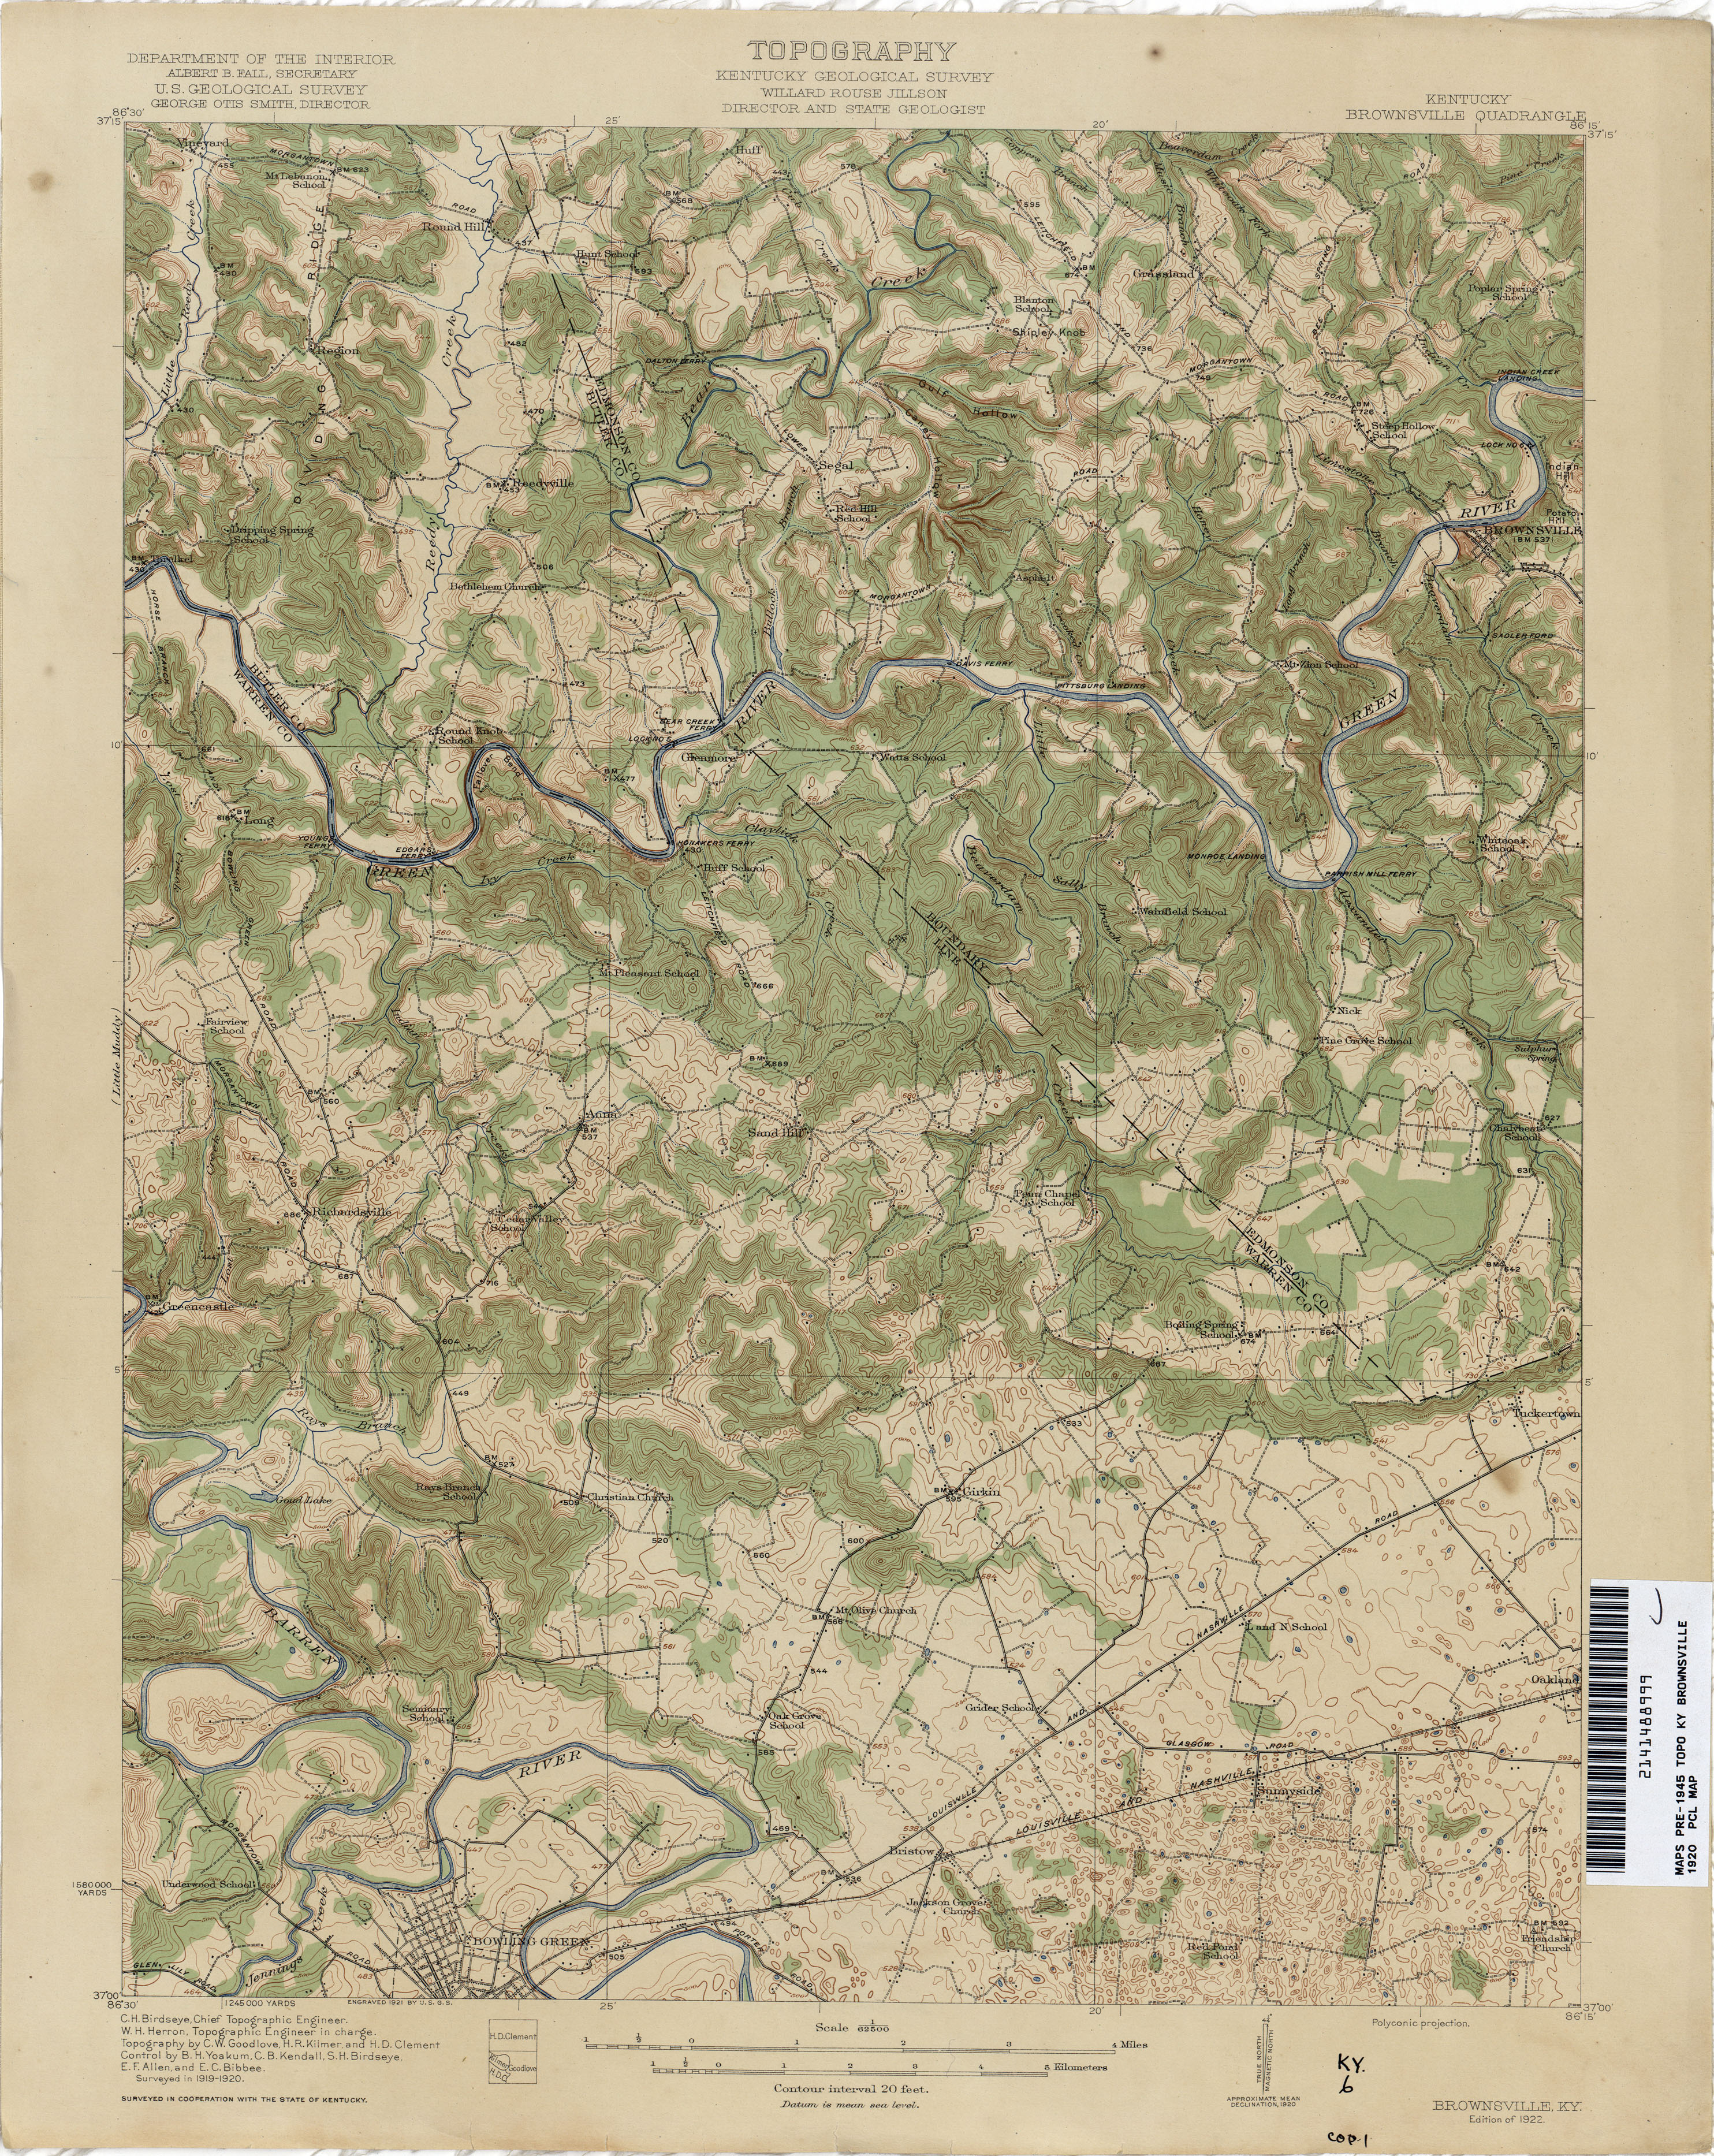 Kentucky Historical Topographic Maps - Perry-Castañeda Map ... on street map of kentucky, water map of kentucky, quaternary map of kentucky, population density map of kentucky, large map of kentucky, vegetation map of kentucky, land map of kentucky, relief map of kentucky, political map of kentucky, topo map of kentucky, landform map of kentucky, soil map of kentucky, topographical map of kentucky, area map of kentucky, 3d map of kentucky, elevation map of kentucky, aerial maps of kentucky, physical map of kentucky, climate map of kentucky, geology map of kentucky,